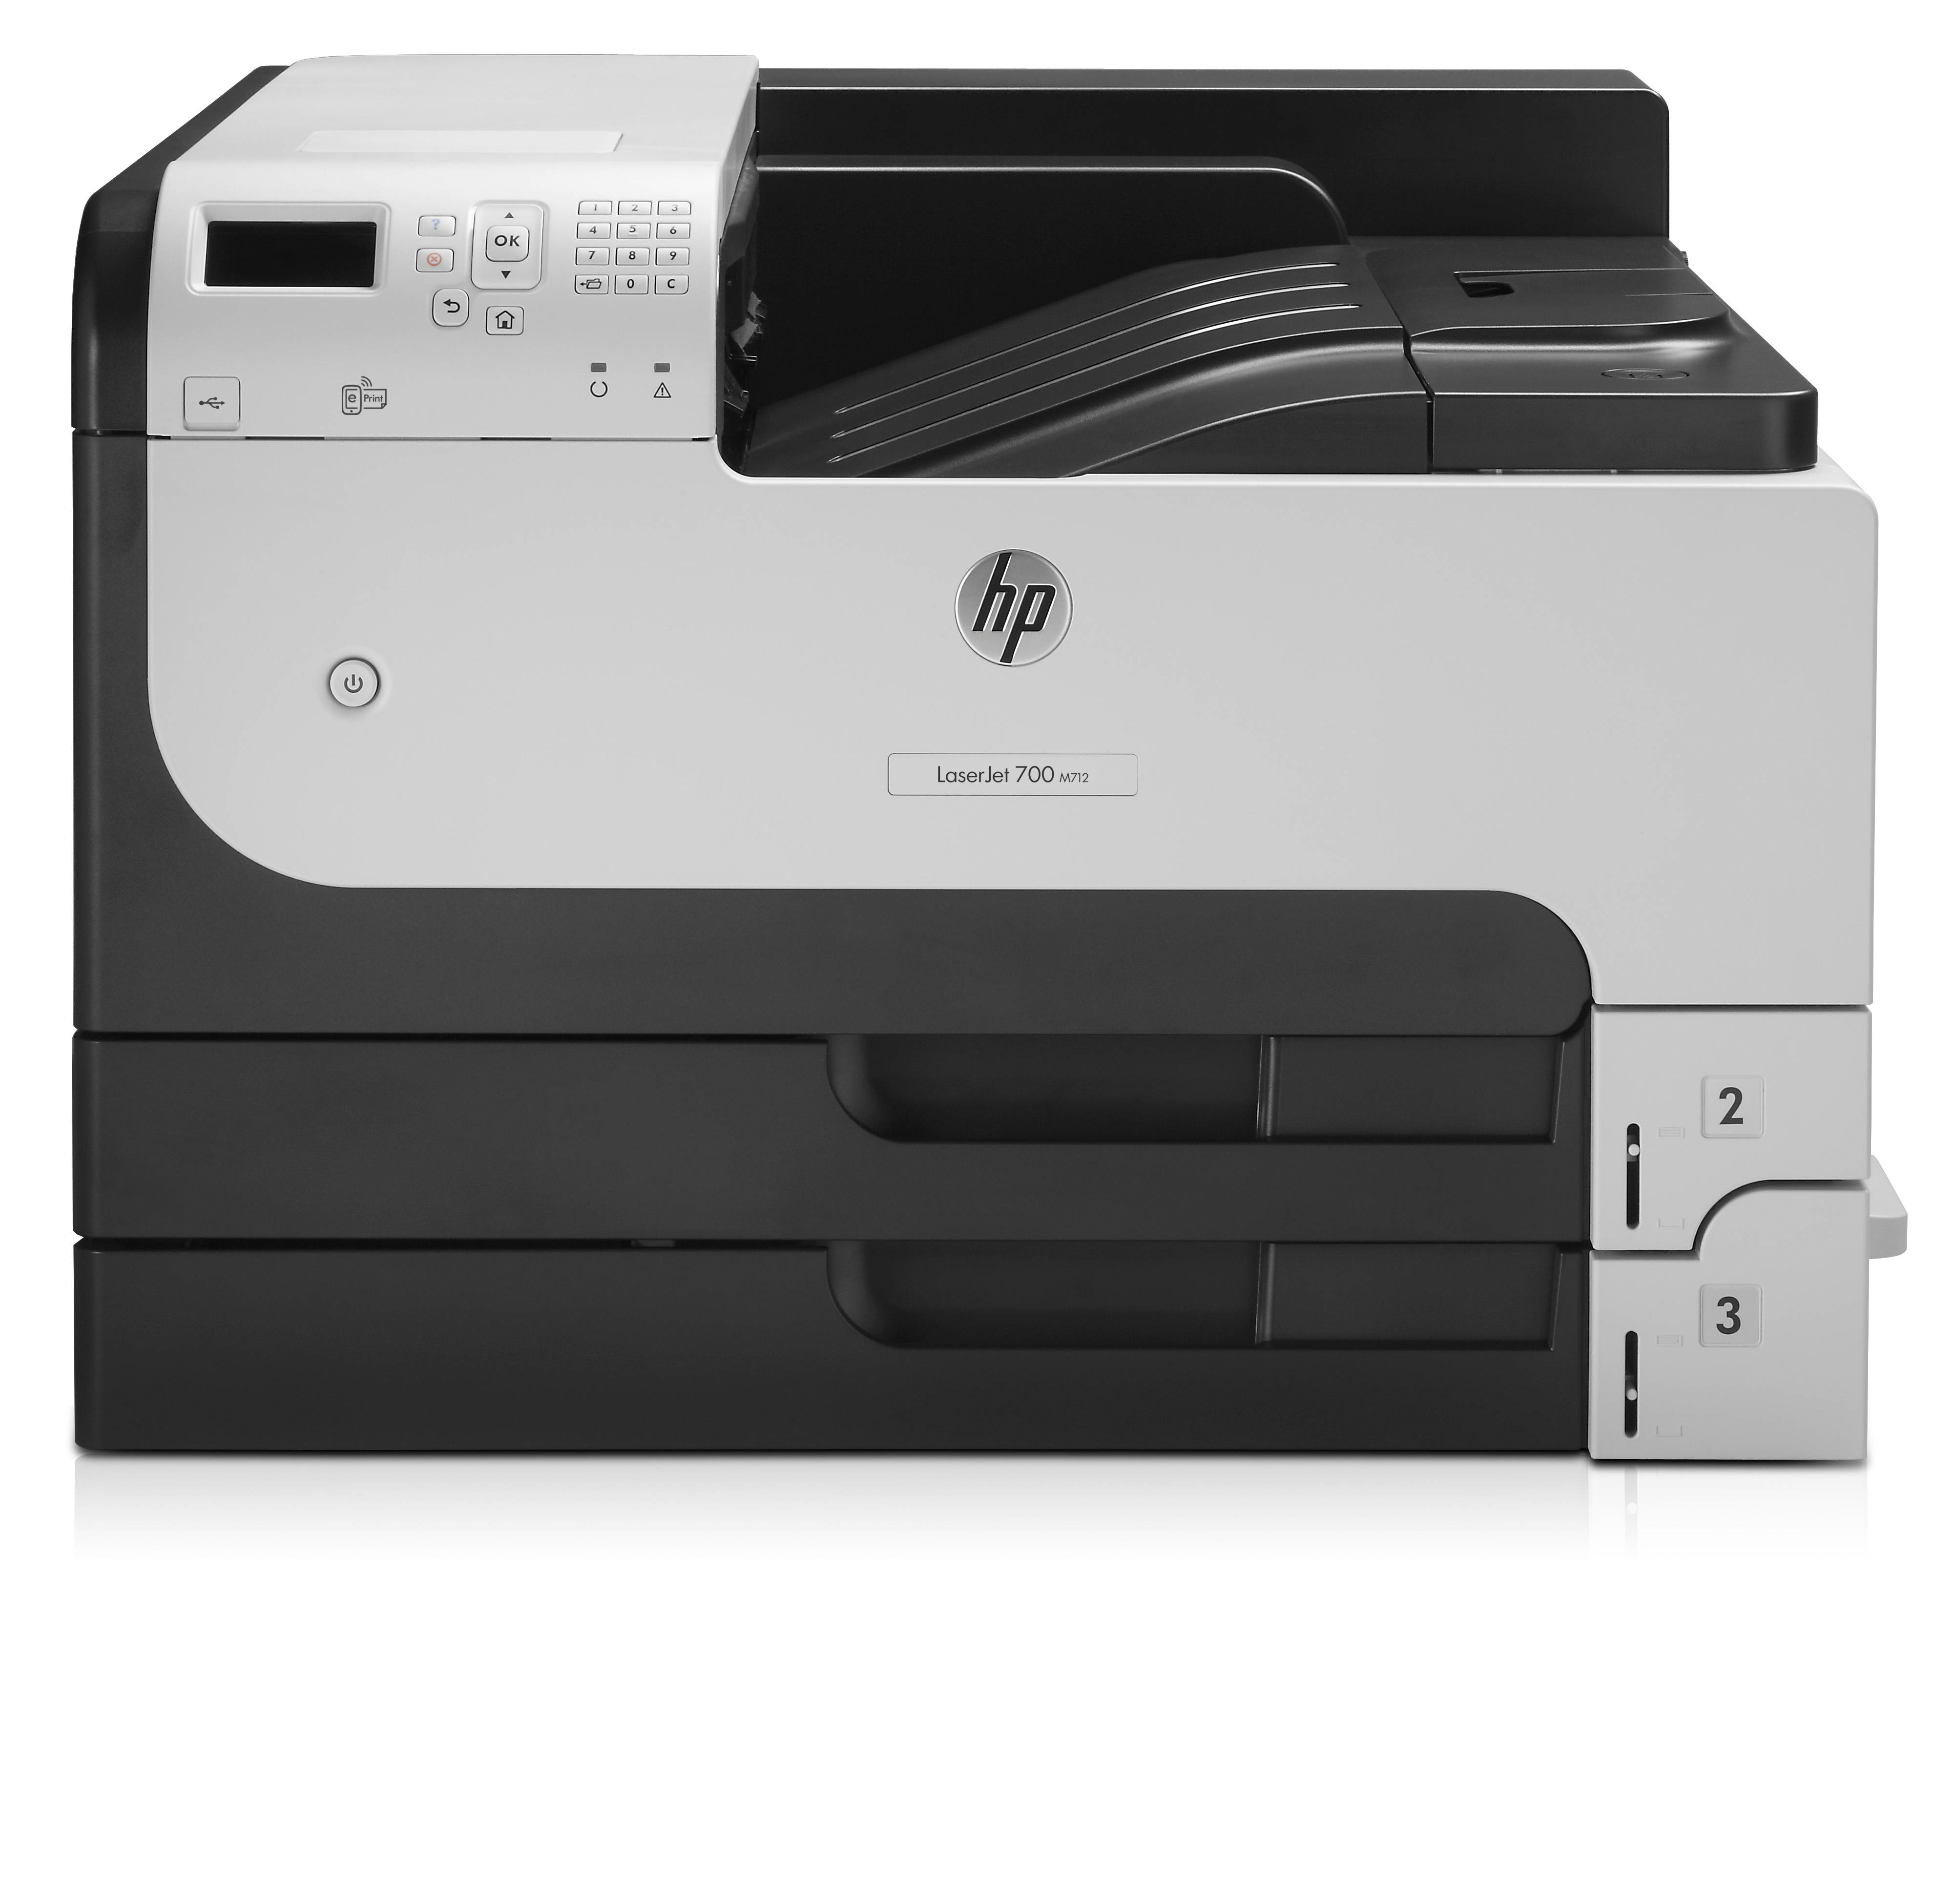 HP LaserJet Enterprise 700 M712dn Mono Laser Printer CF236A - Refurbished